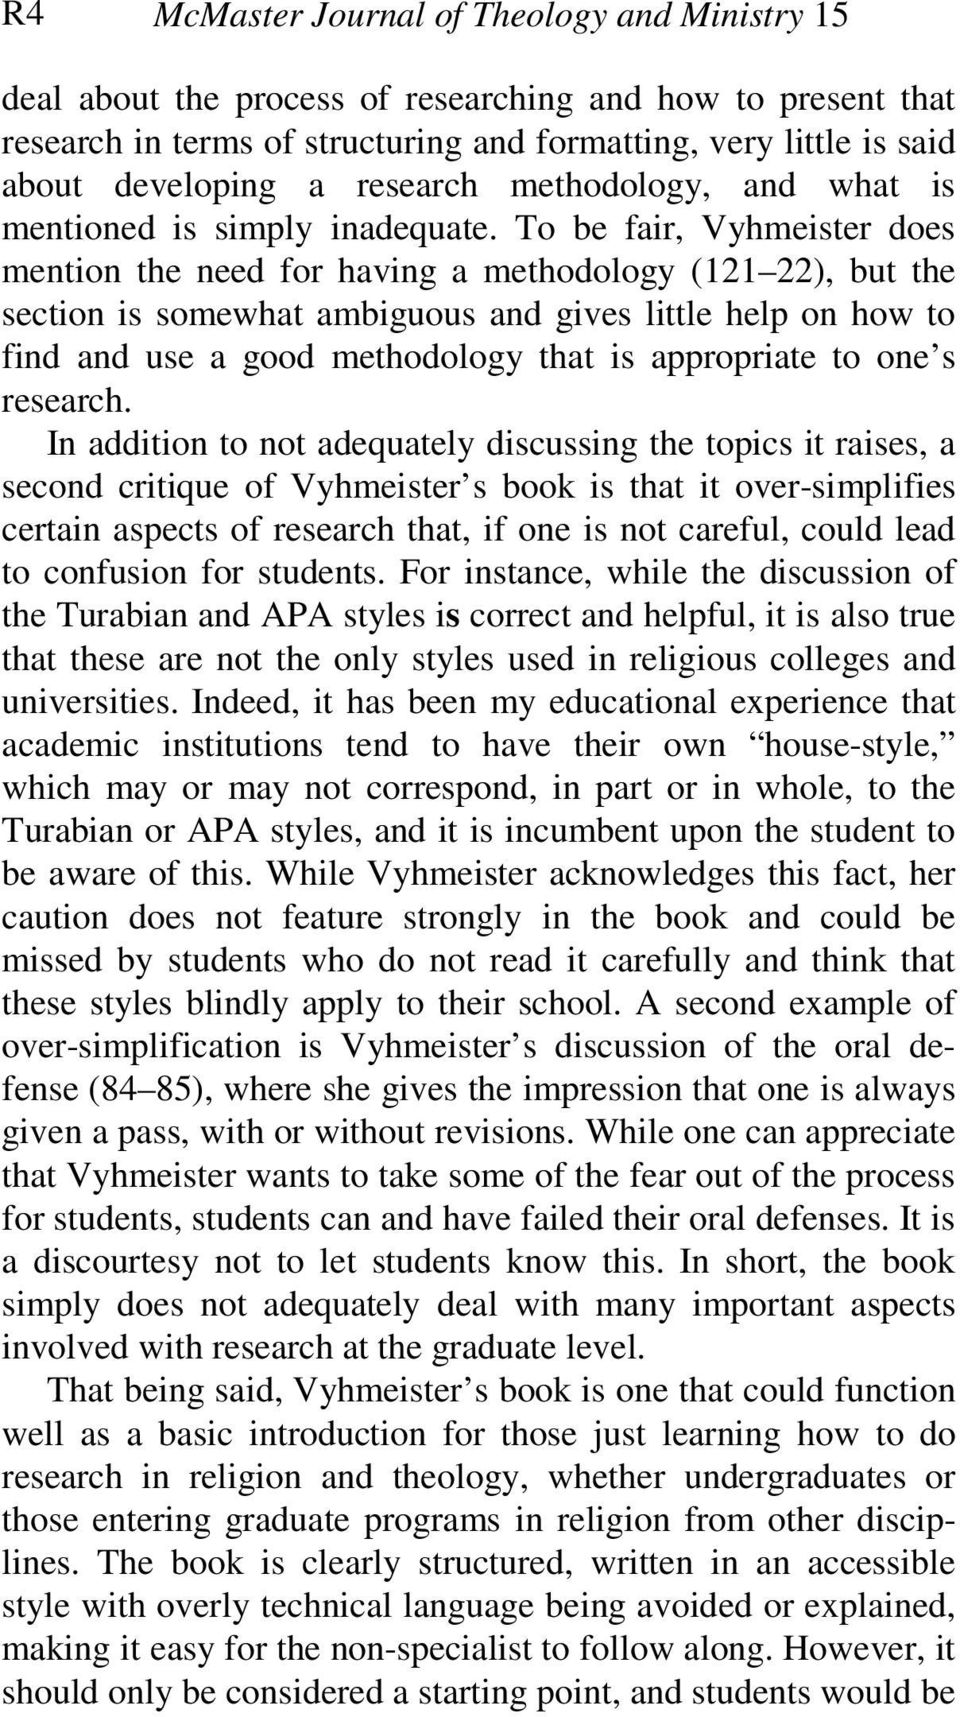 nancy vyhmeister quality research papers pdf